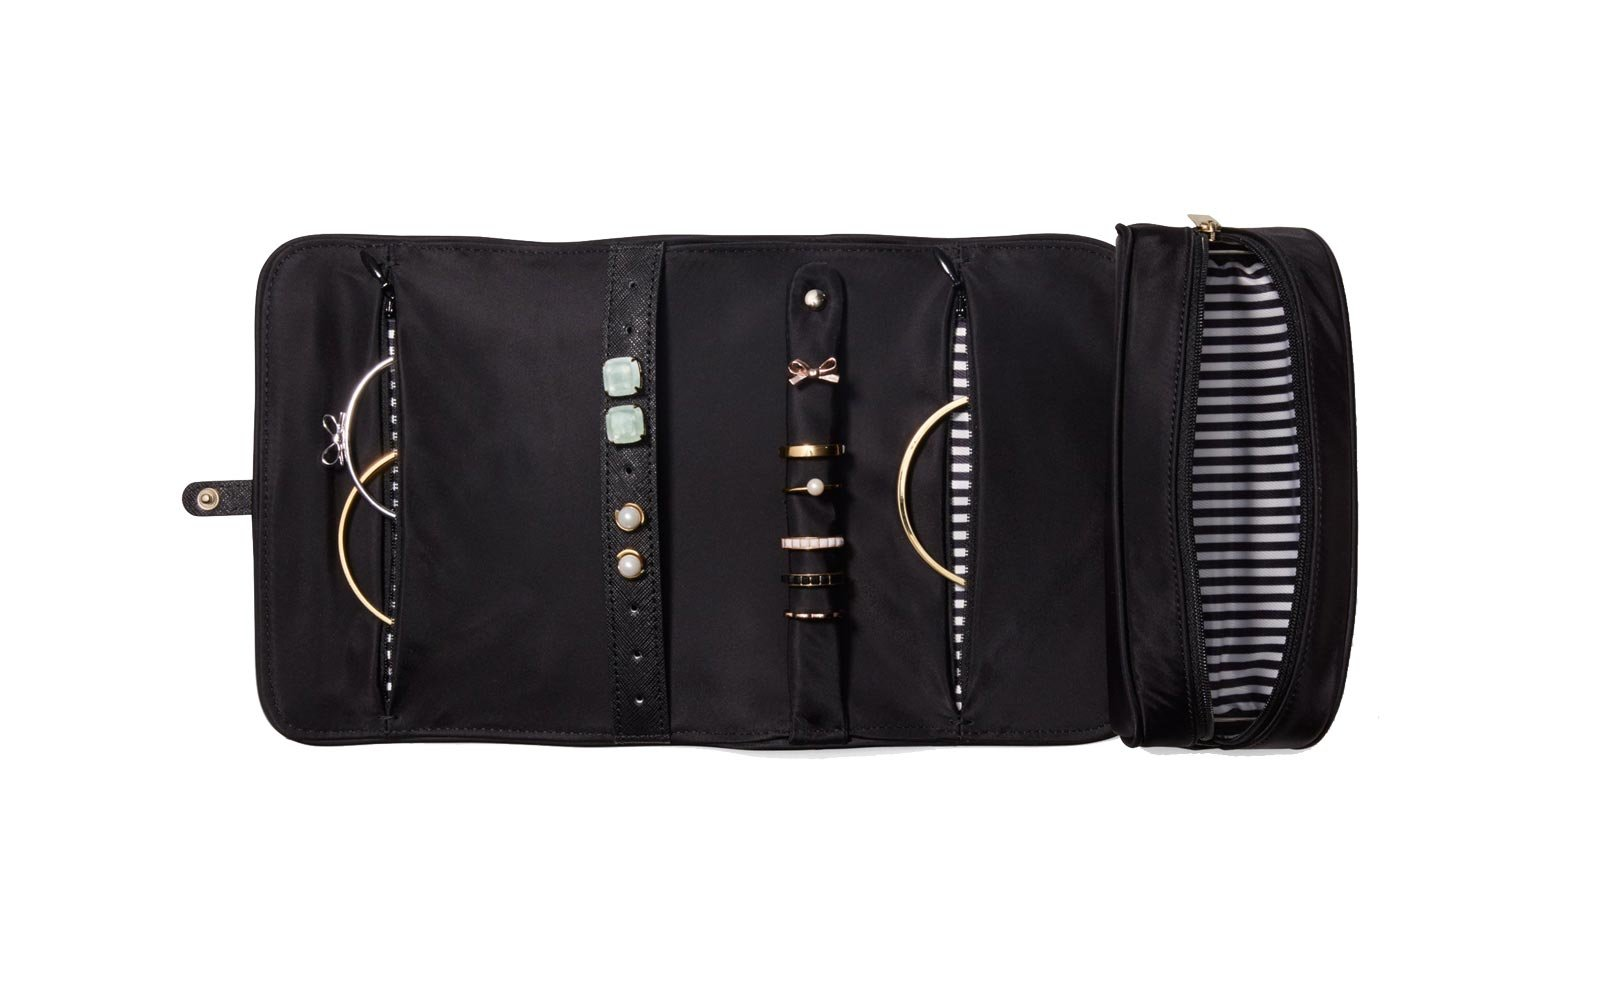 702593db04321 14 Travel Jewelry Cases for Your Next Trip